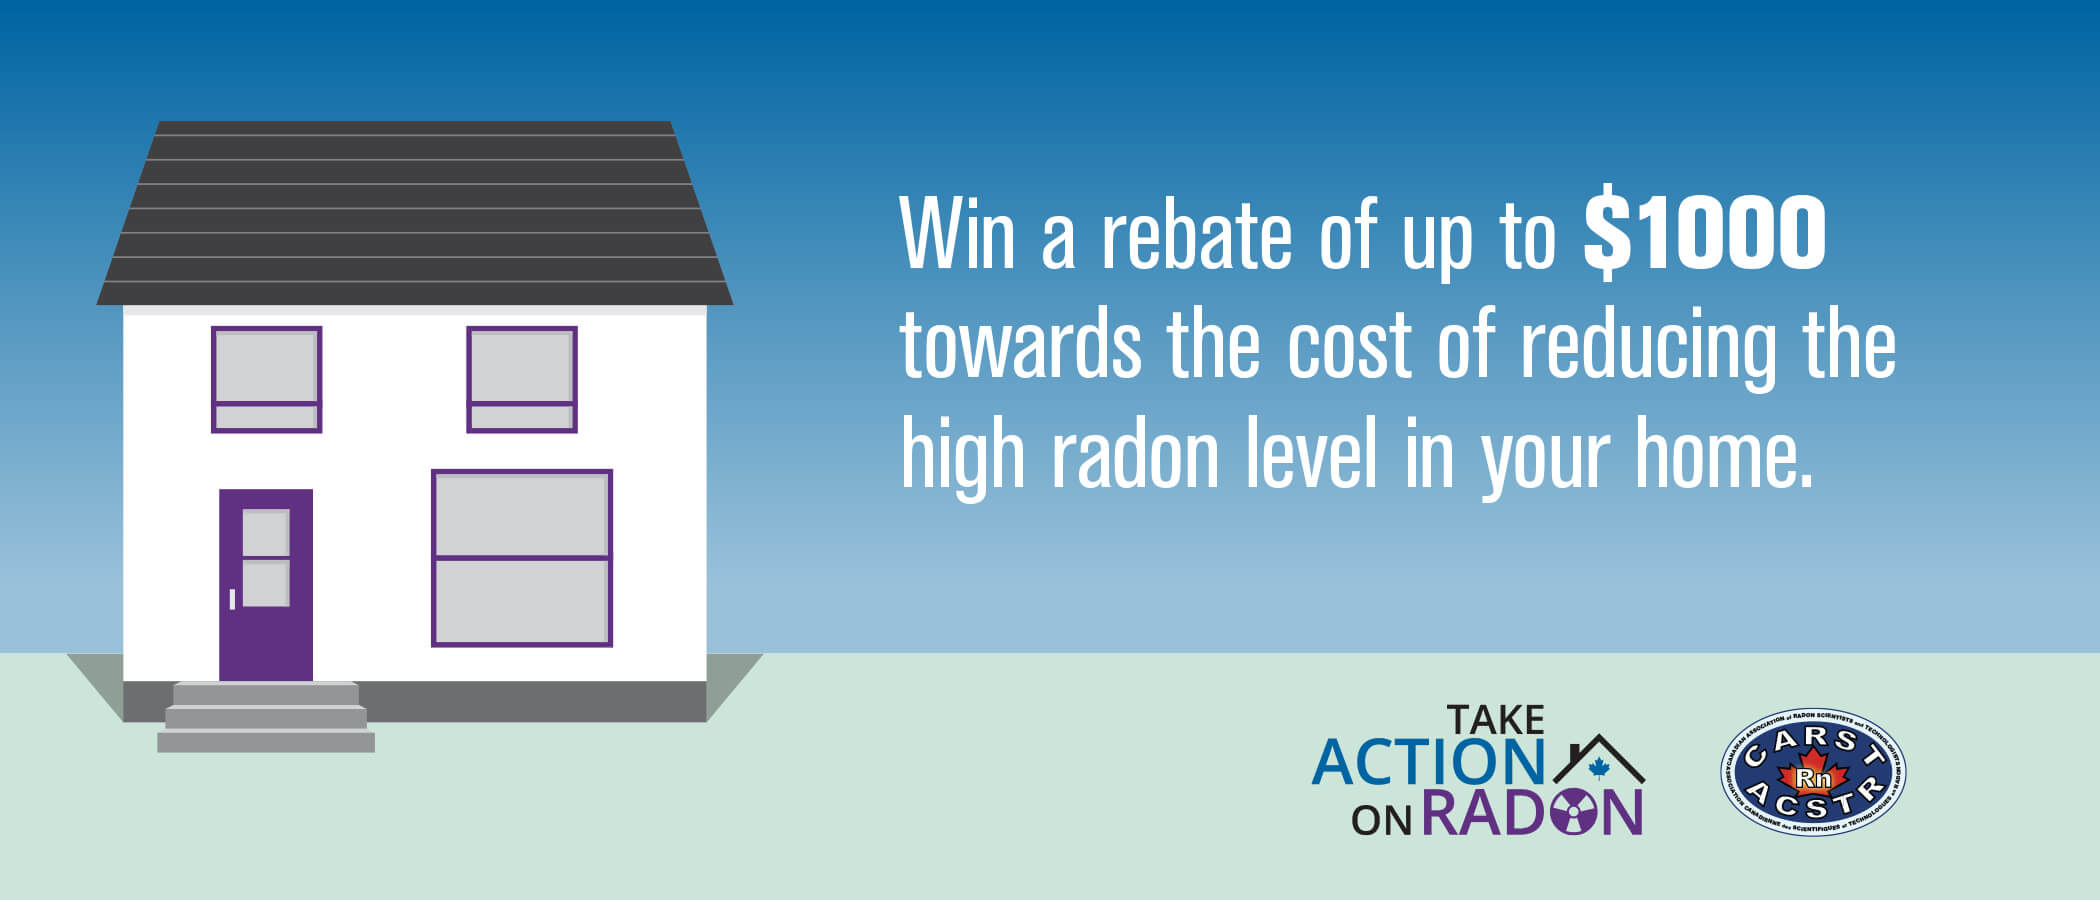 Win a rebate of up to $1000 towards the cost of reducing the high radon level in your home.